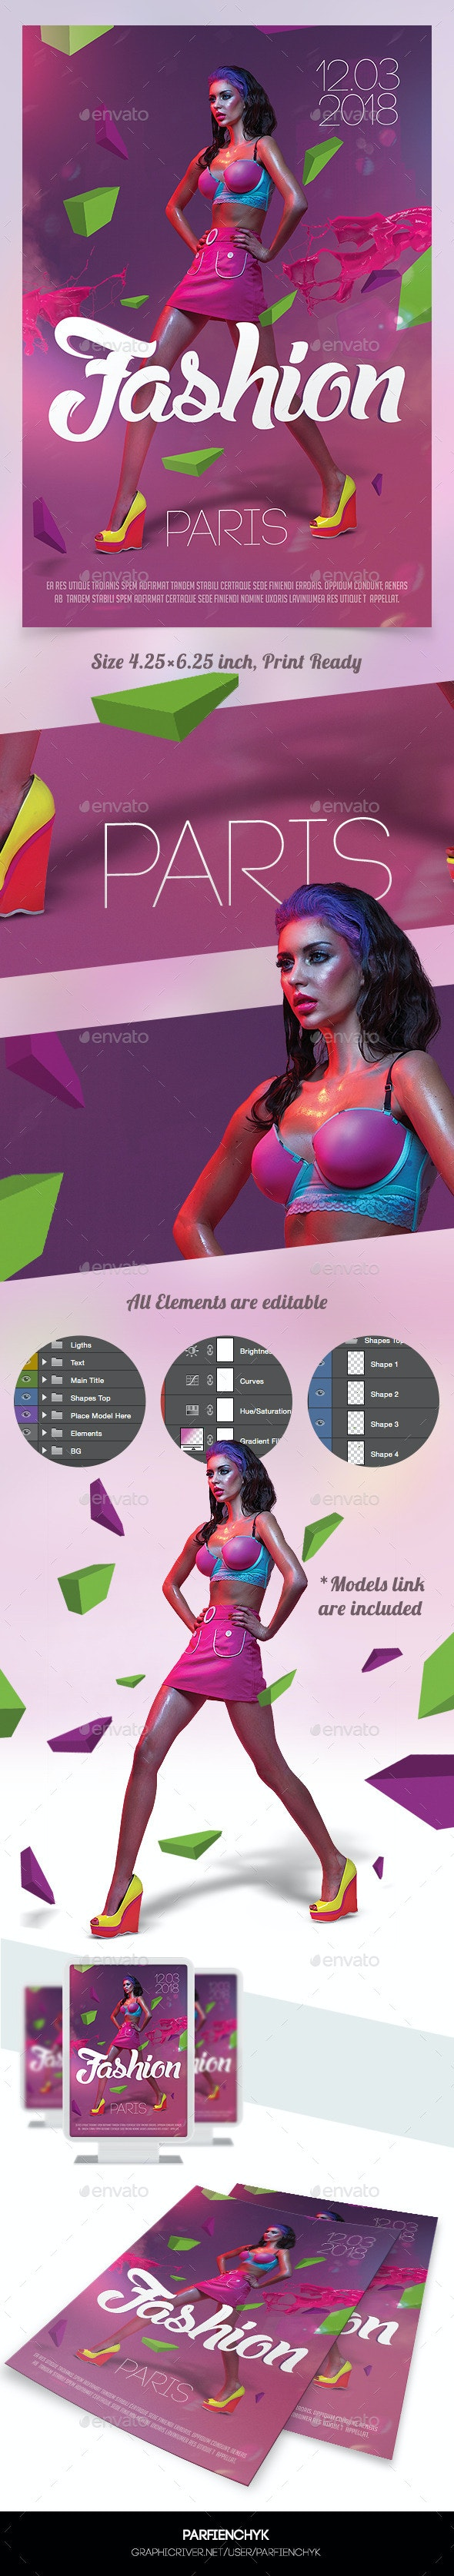 Fashion Show Flyer Template - Clubs & Parties Events